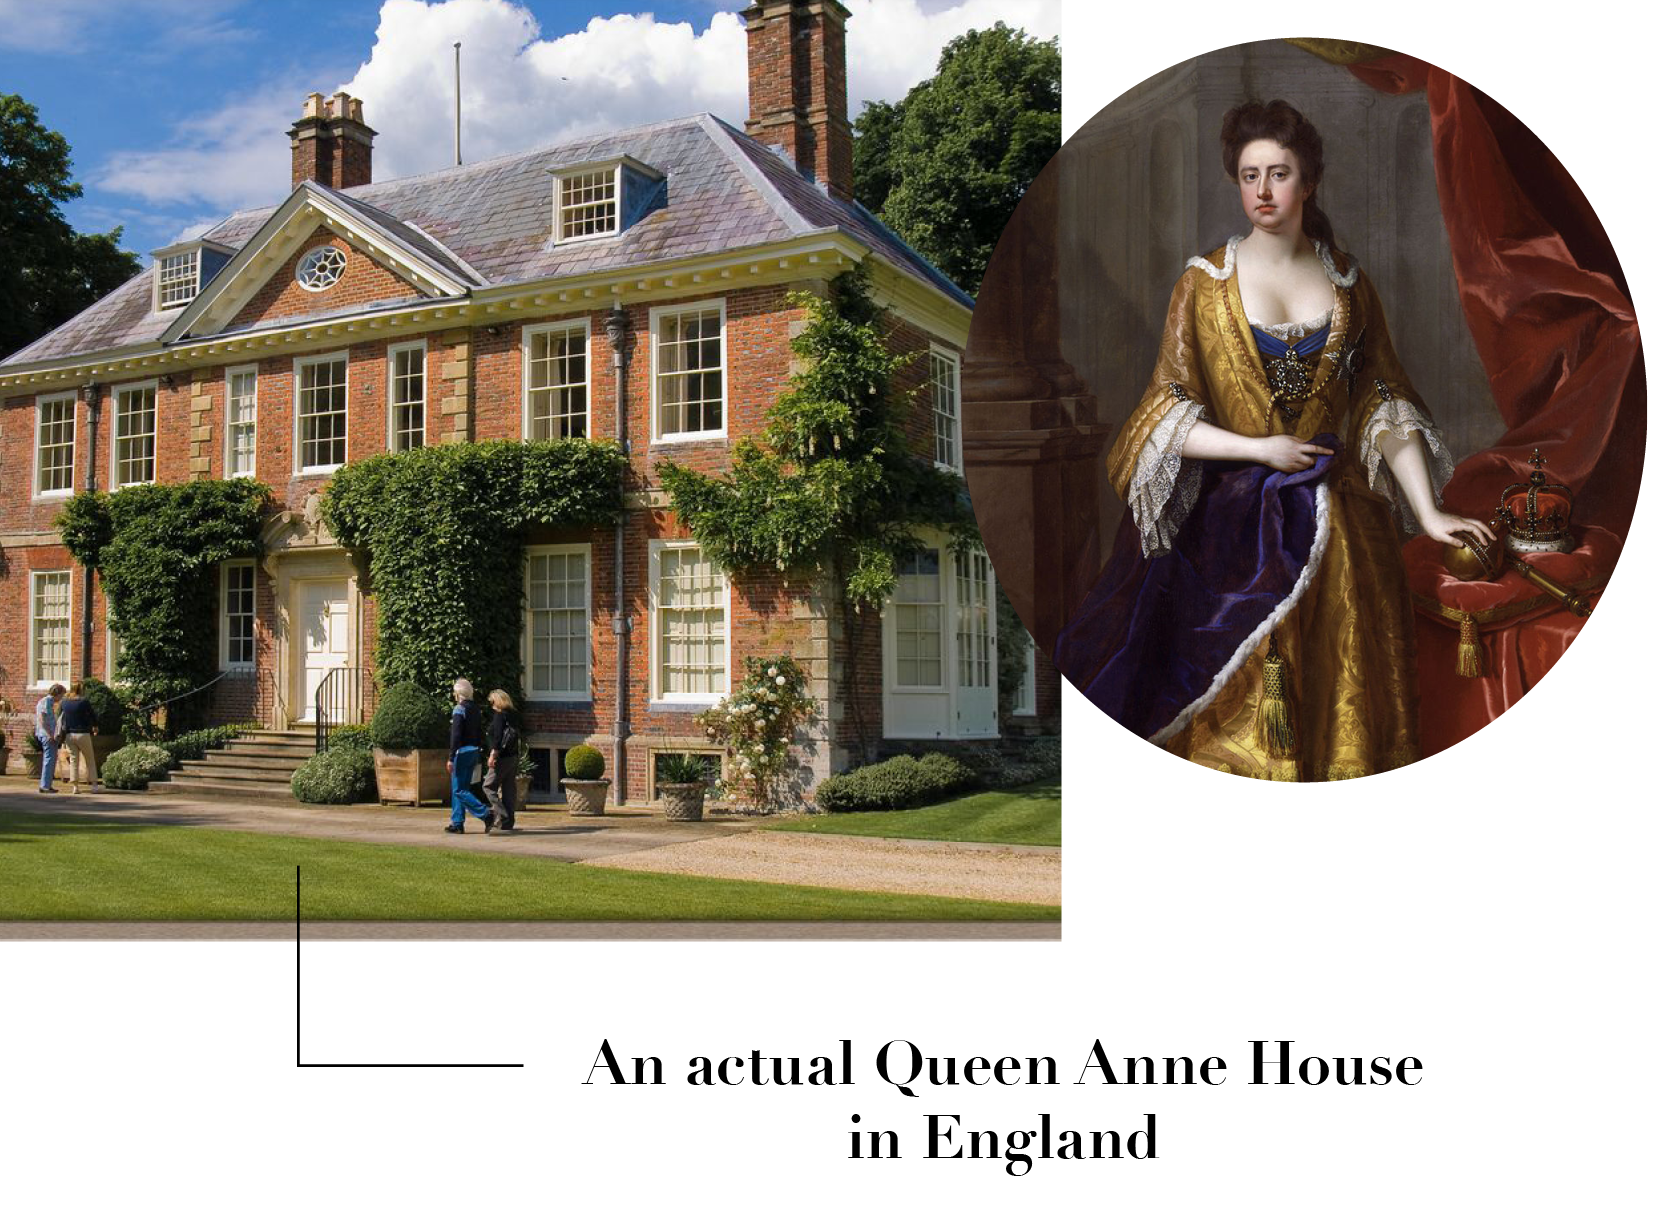 Left:    Poulton House built during Queen Anne's reign –    characterized by strongly bilateral symmetry with an Italianate or Palladian-derived pediment on the front formal elevation. Right: Portrait of Anne, Queen of Great Britain.